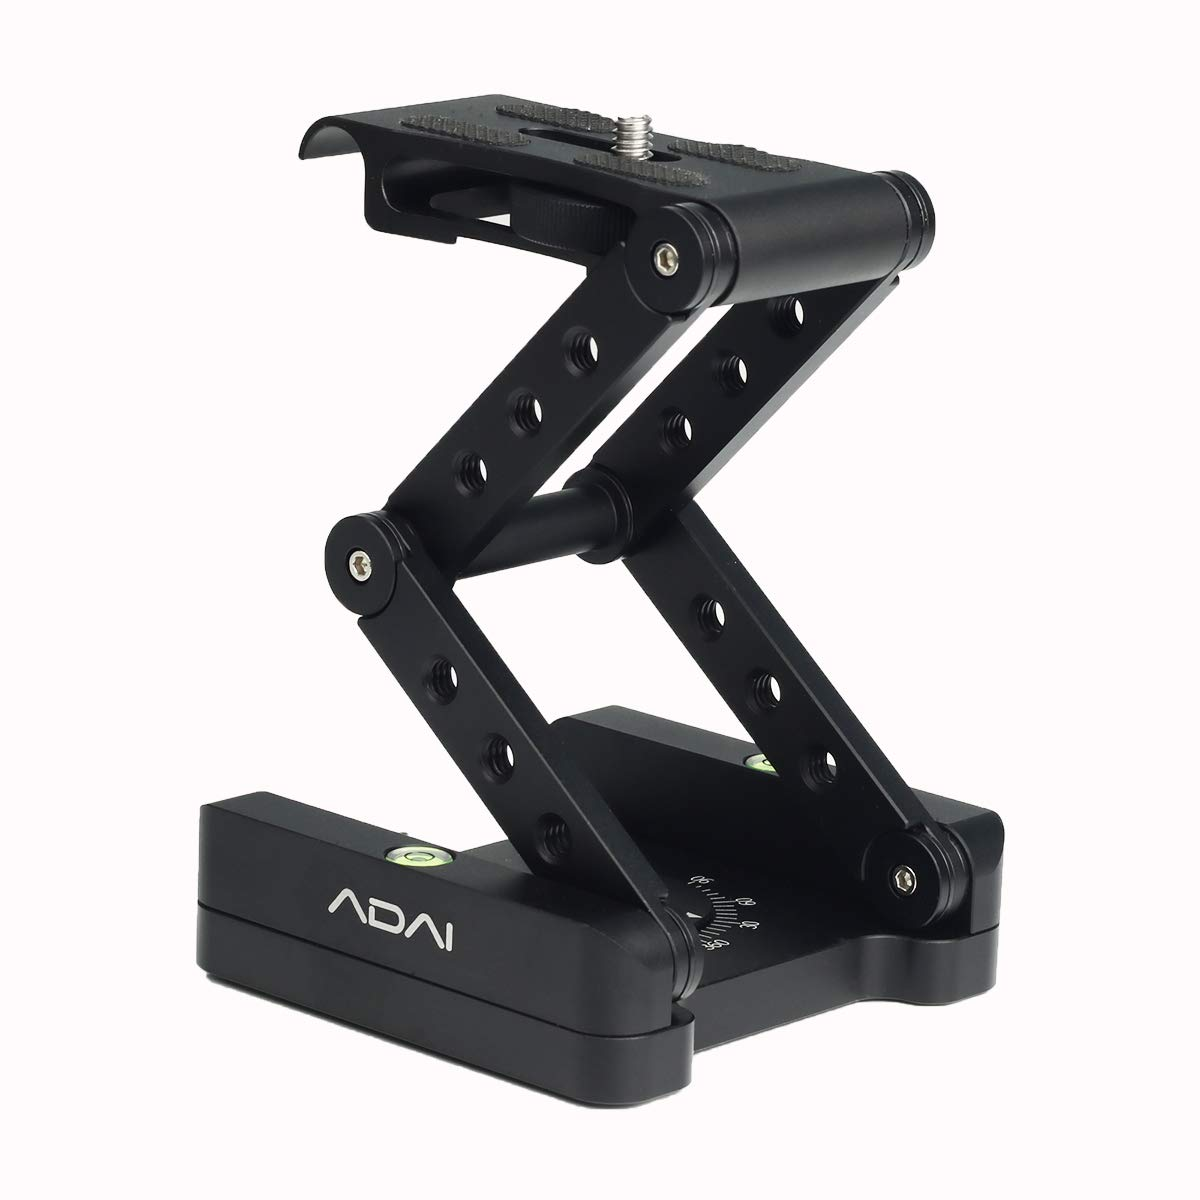 360°Rotating Folding Z Flex Tilt Head Tripod Head Aluminum Alloy Folding Camera Bracket with Quick Release Plate Stand Holder Compatible with DSLR Camera Canon Nikon Sony Pentax by ADAI (Image #1)